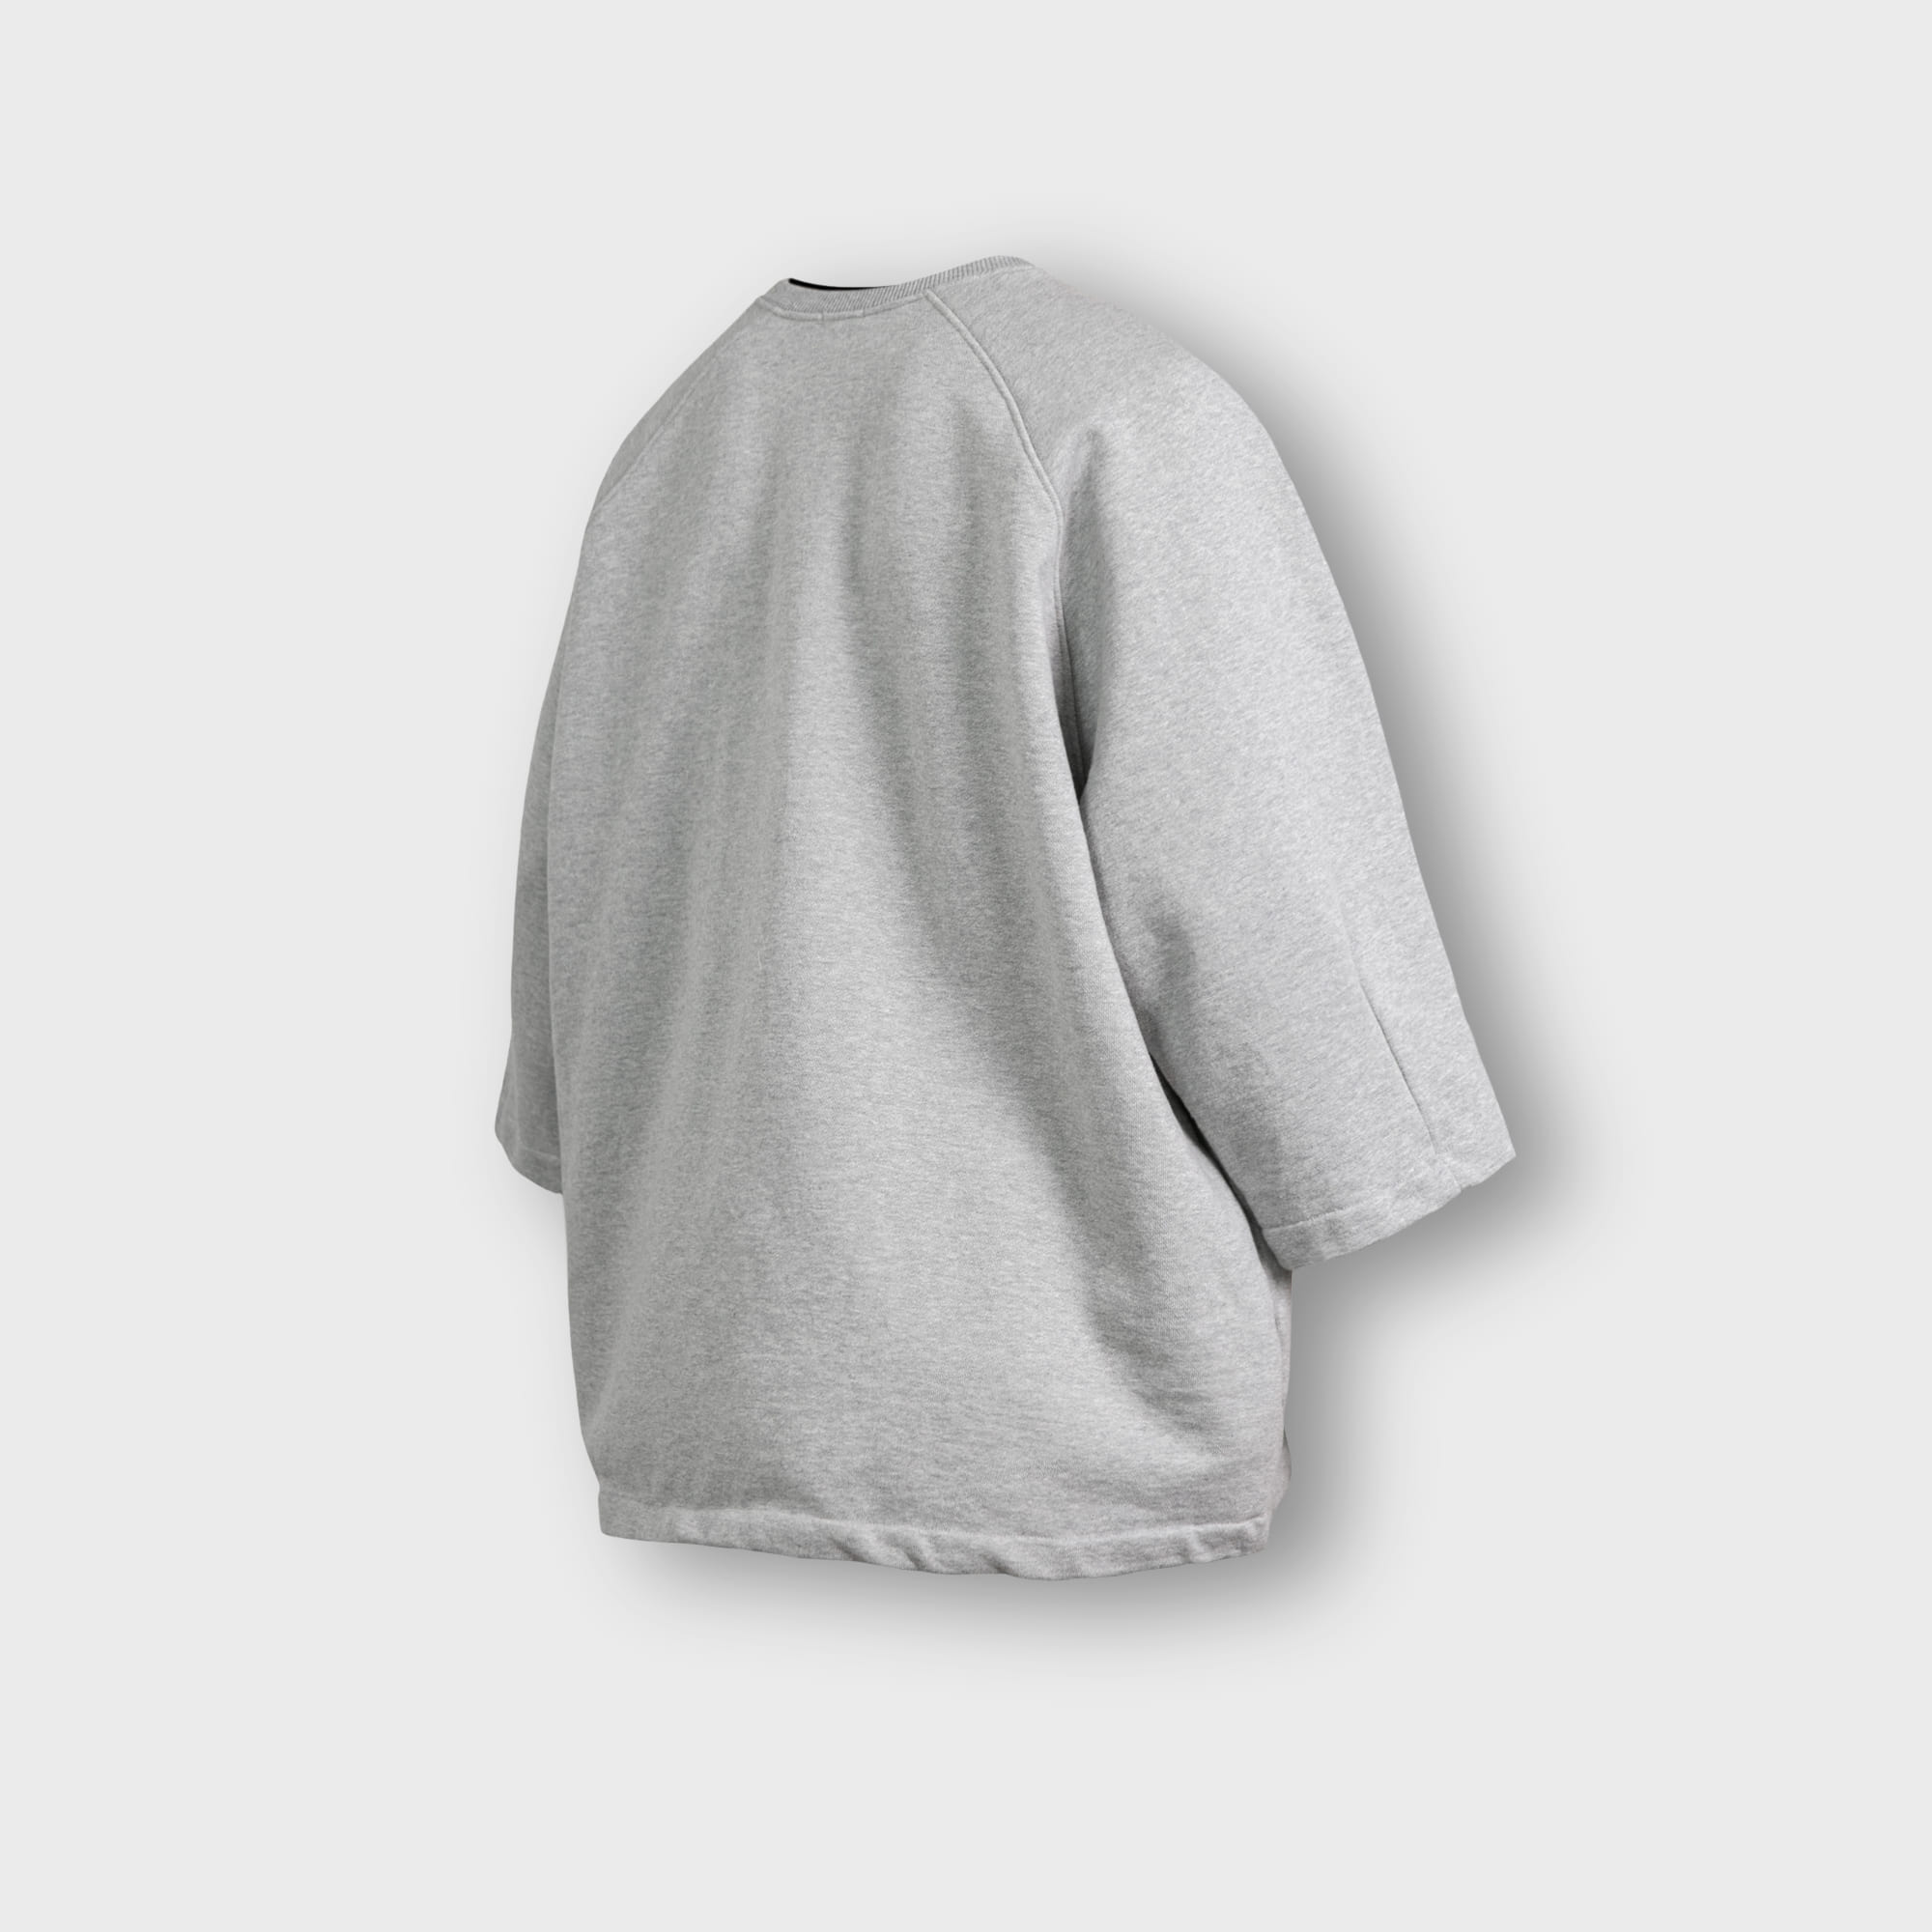 [AG] Heavy Sweat Medium Sleeve Tee - Grey